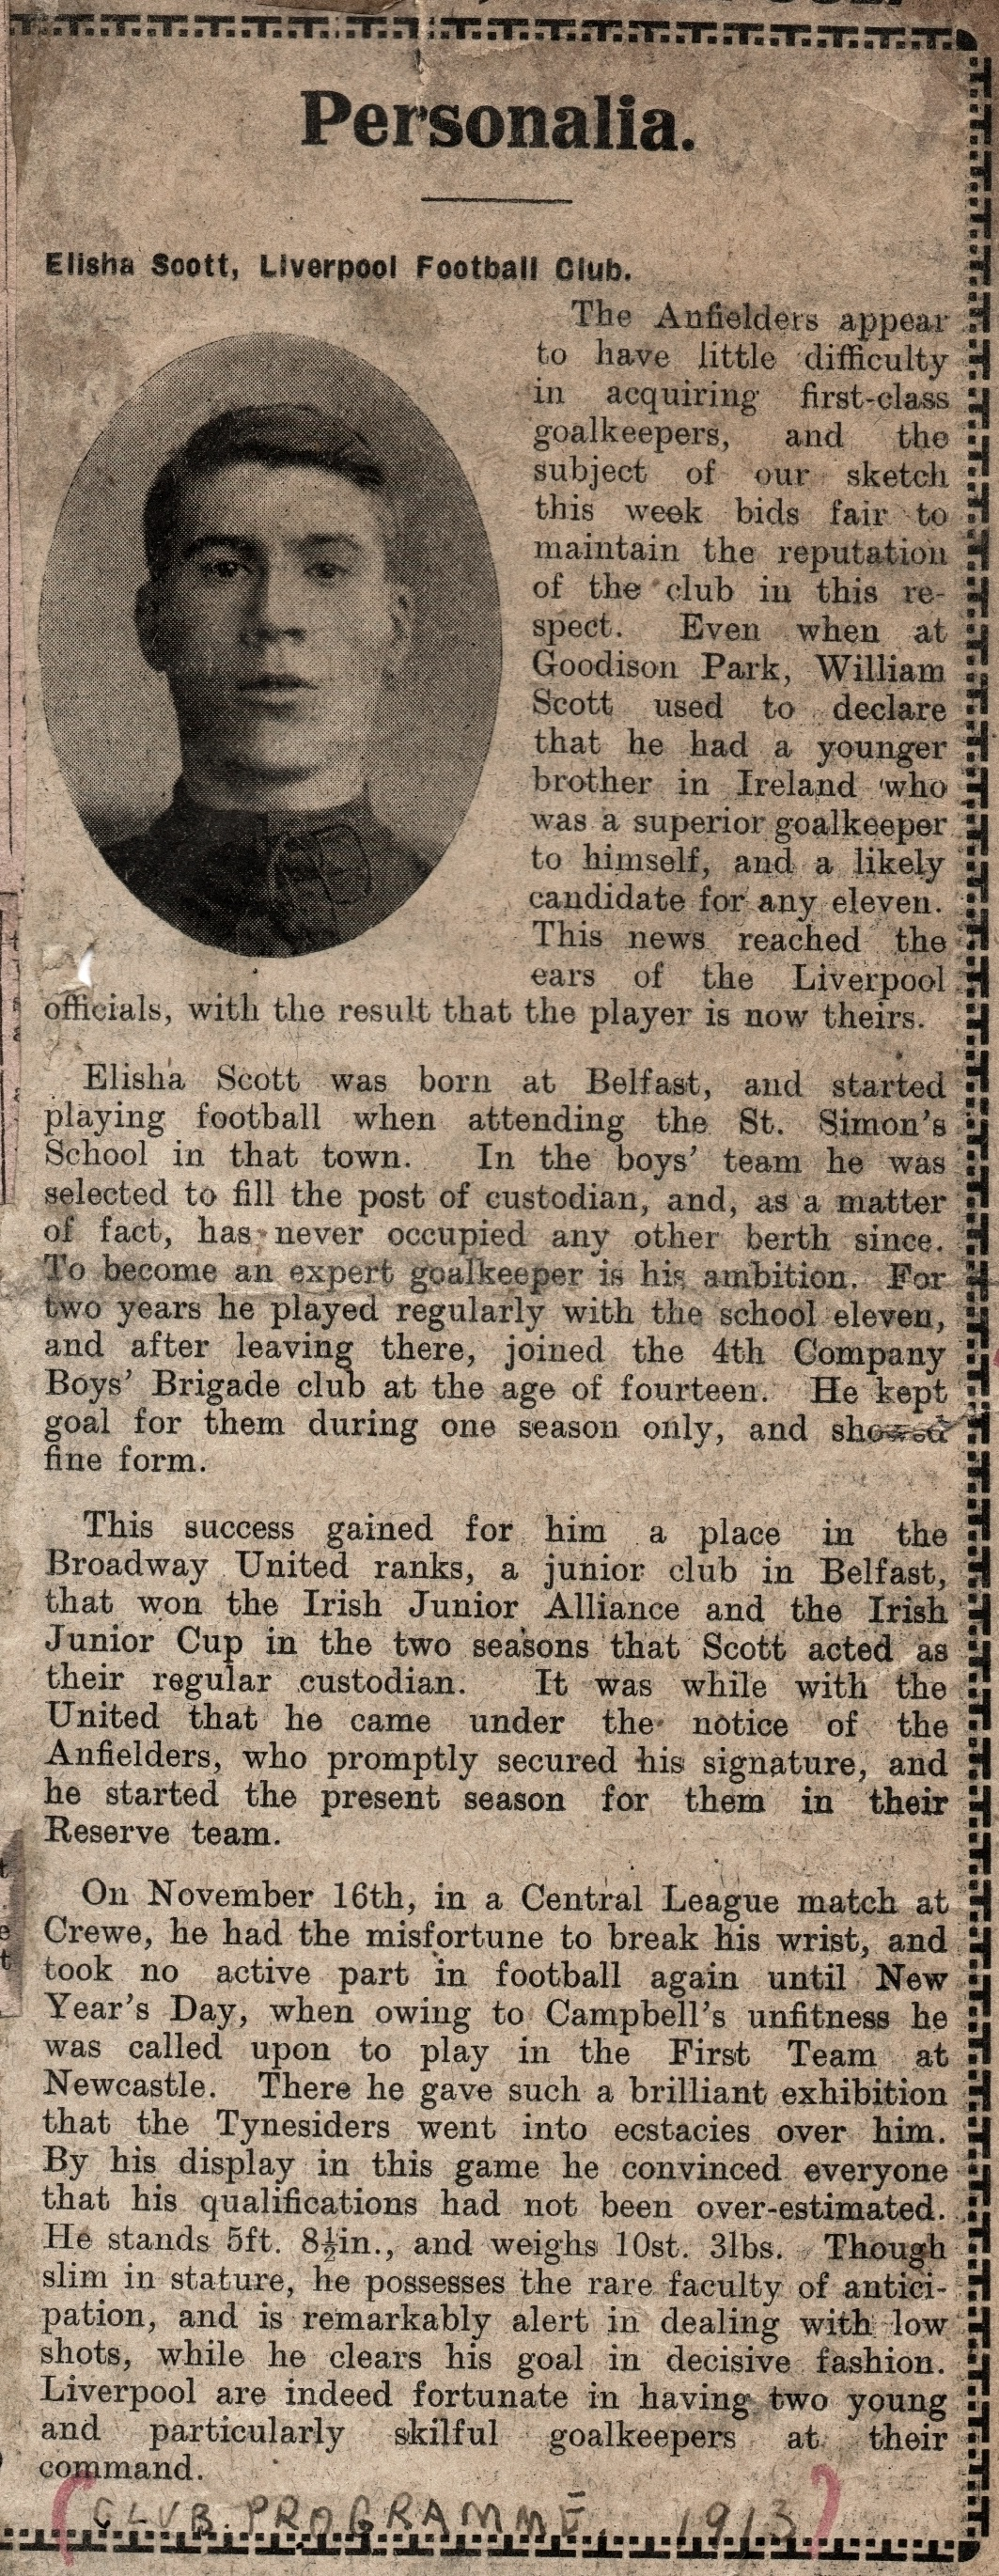 Scott's Personalia in Club programme 1913